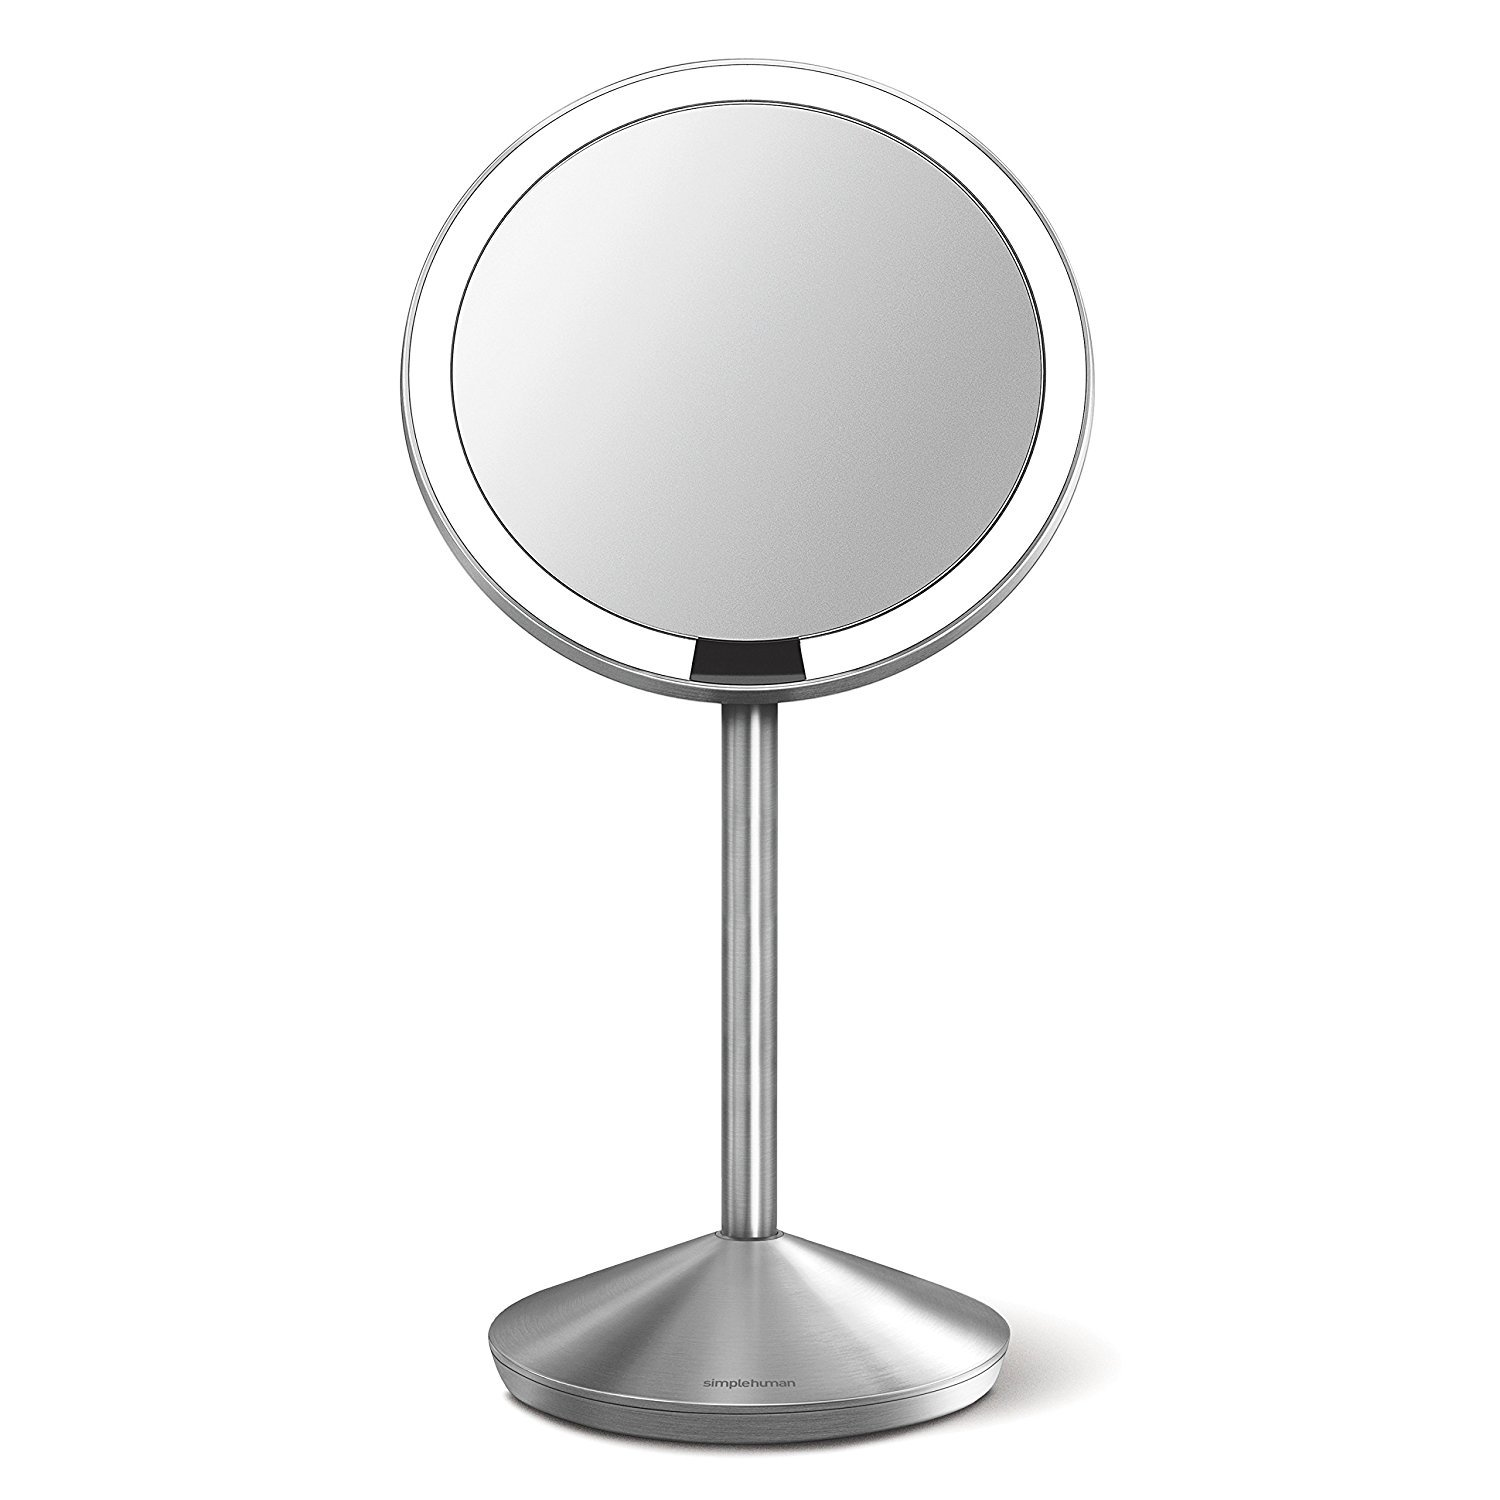 "simplehuman Mini Sensor Lighted Makeup Travel Mirror 5"" Round, 10x Magnification, Stainless Steel, Rechargeable"